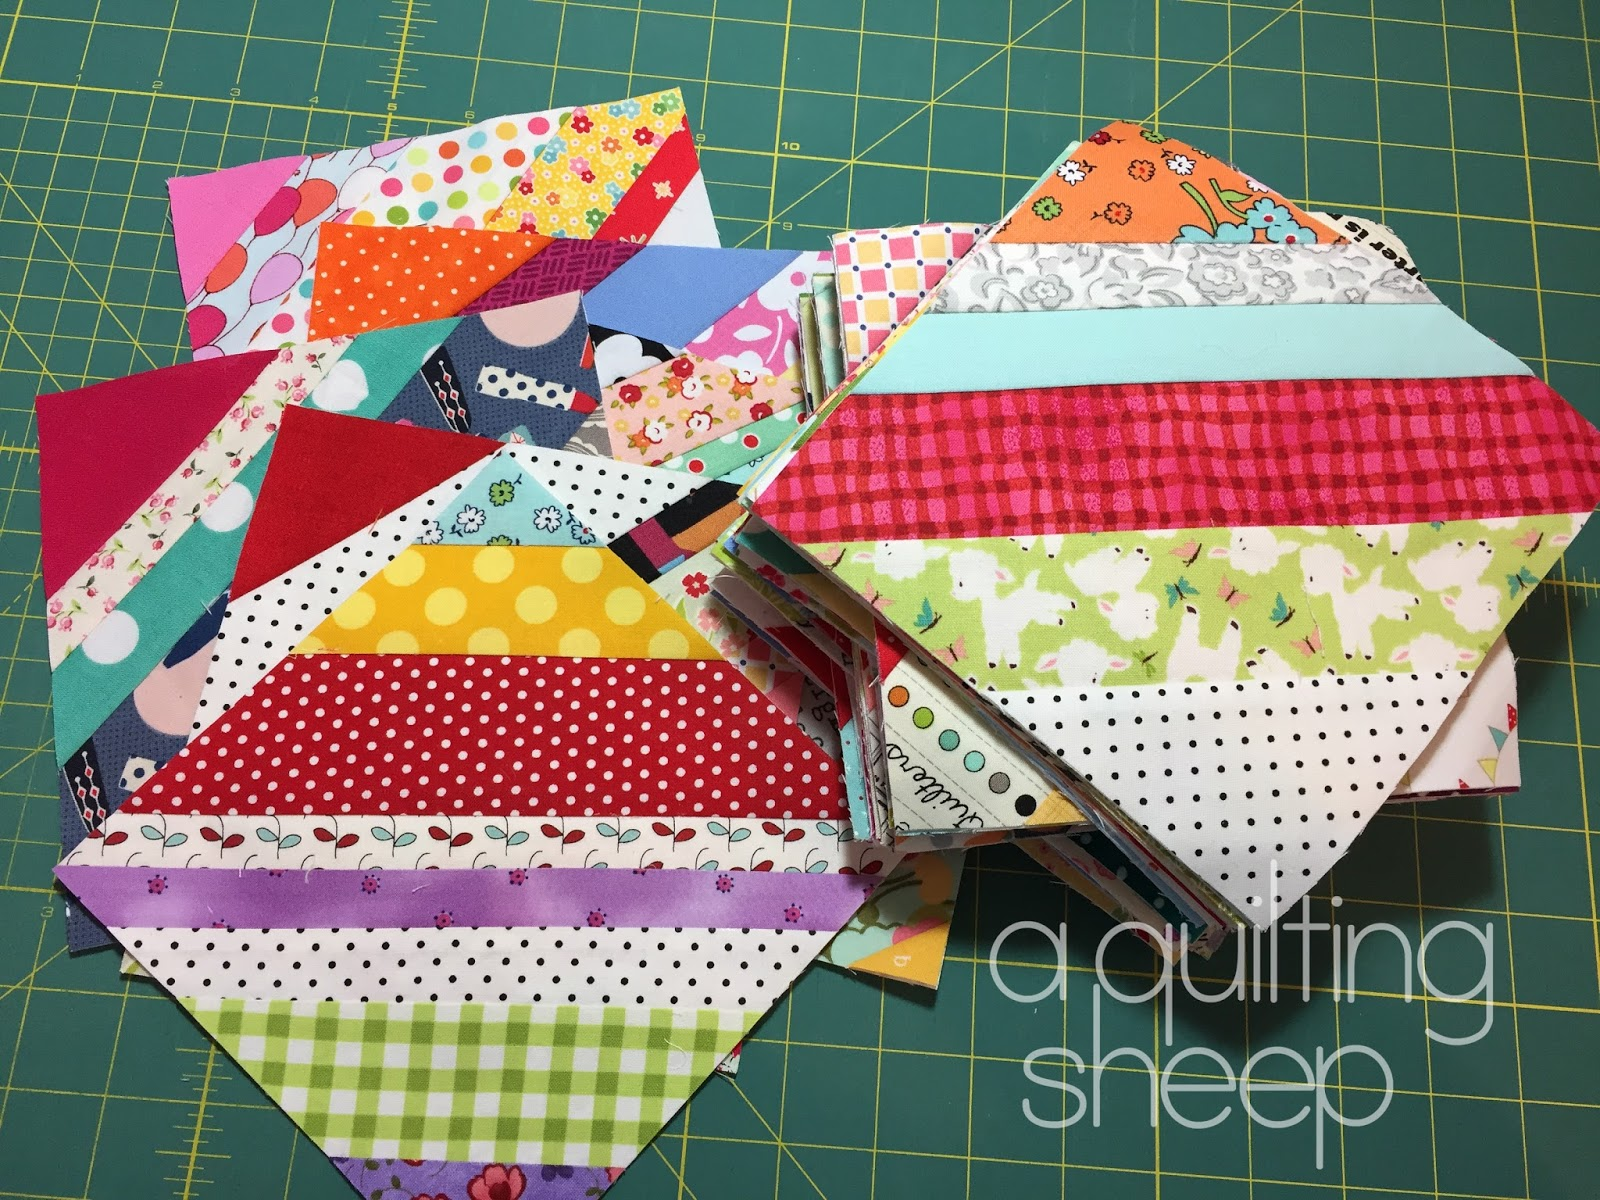 A Quilting Sheep March 2017